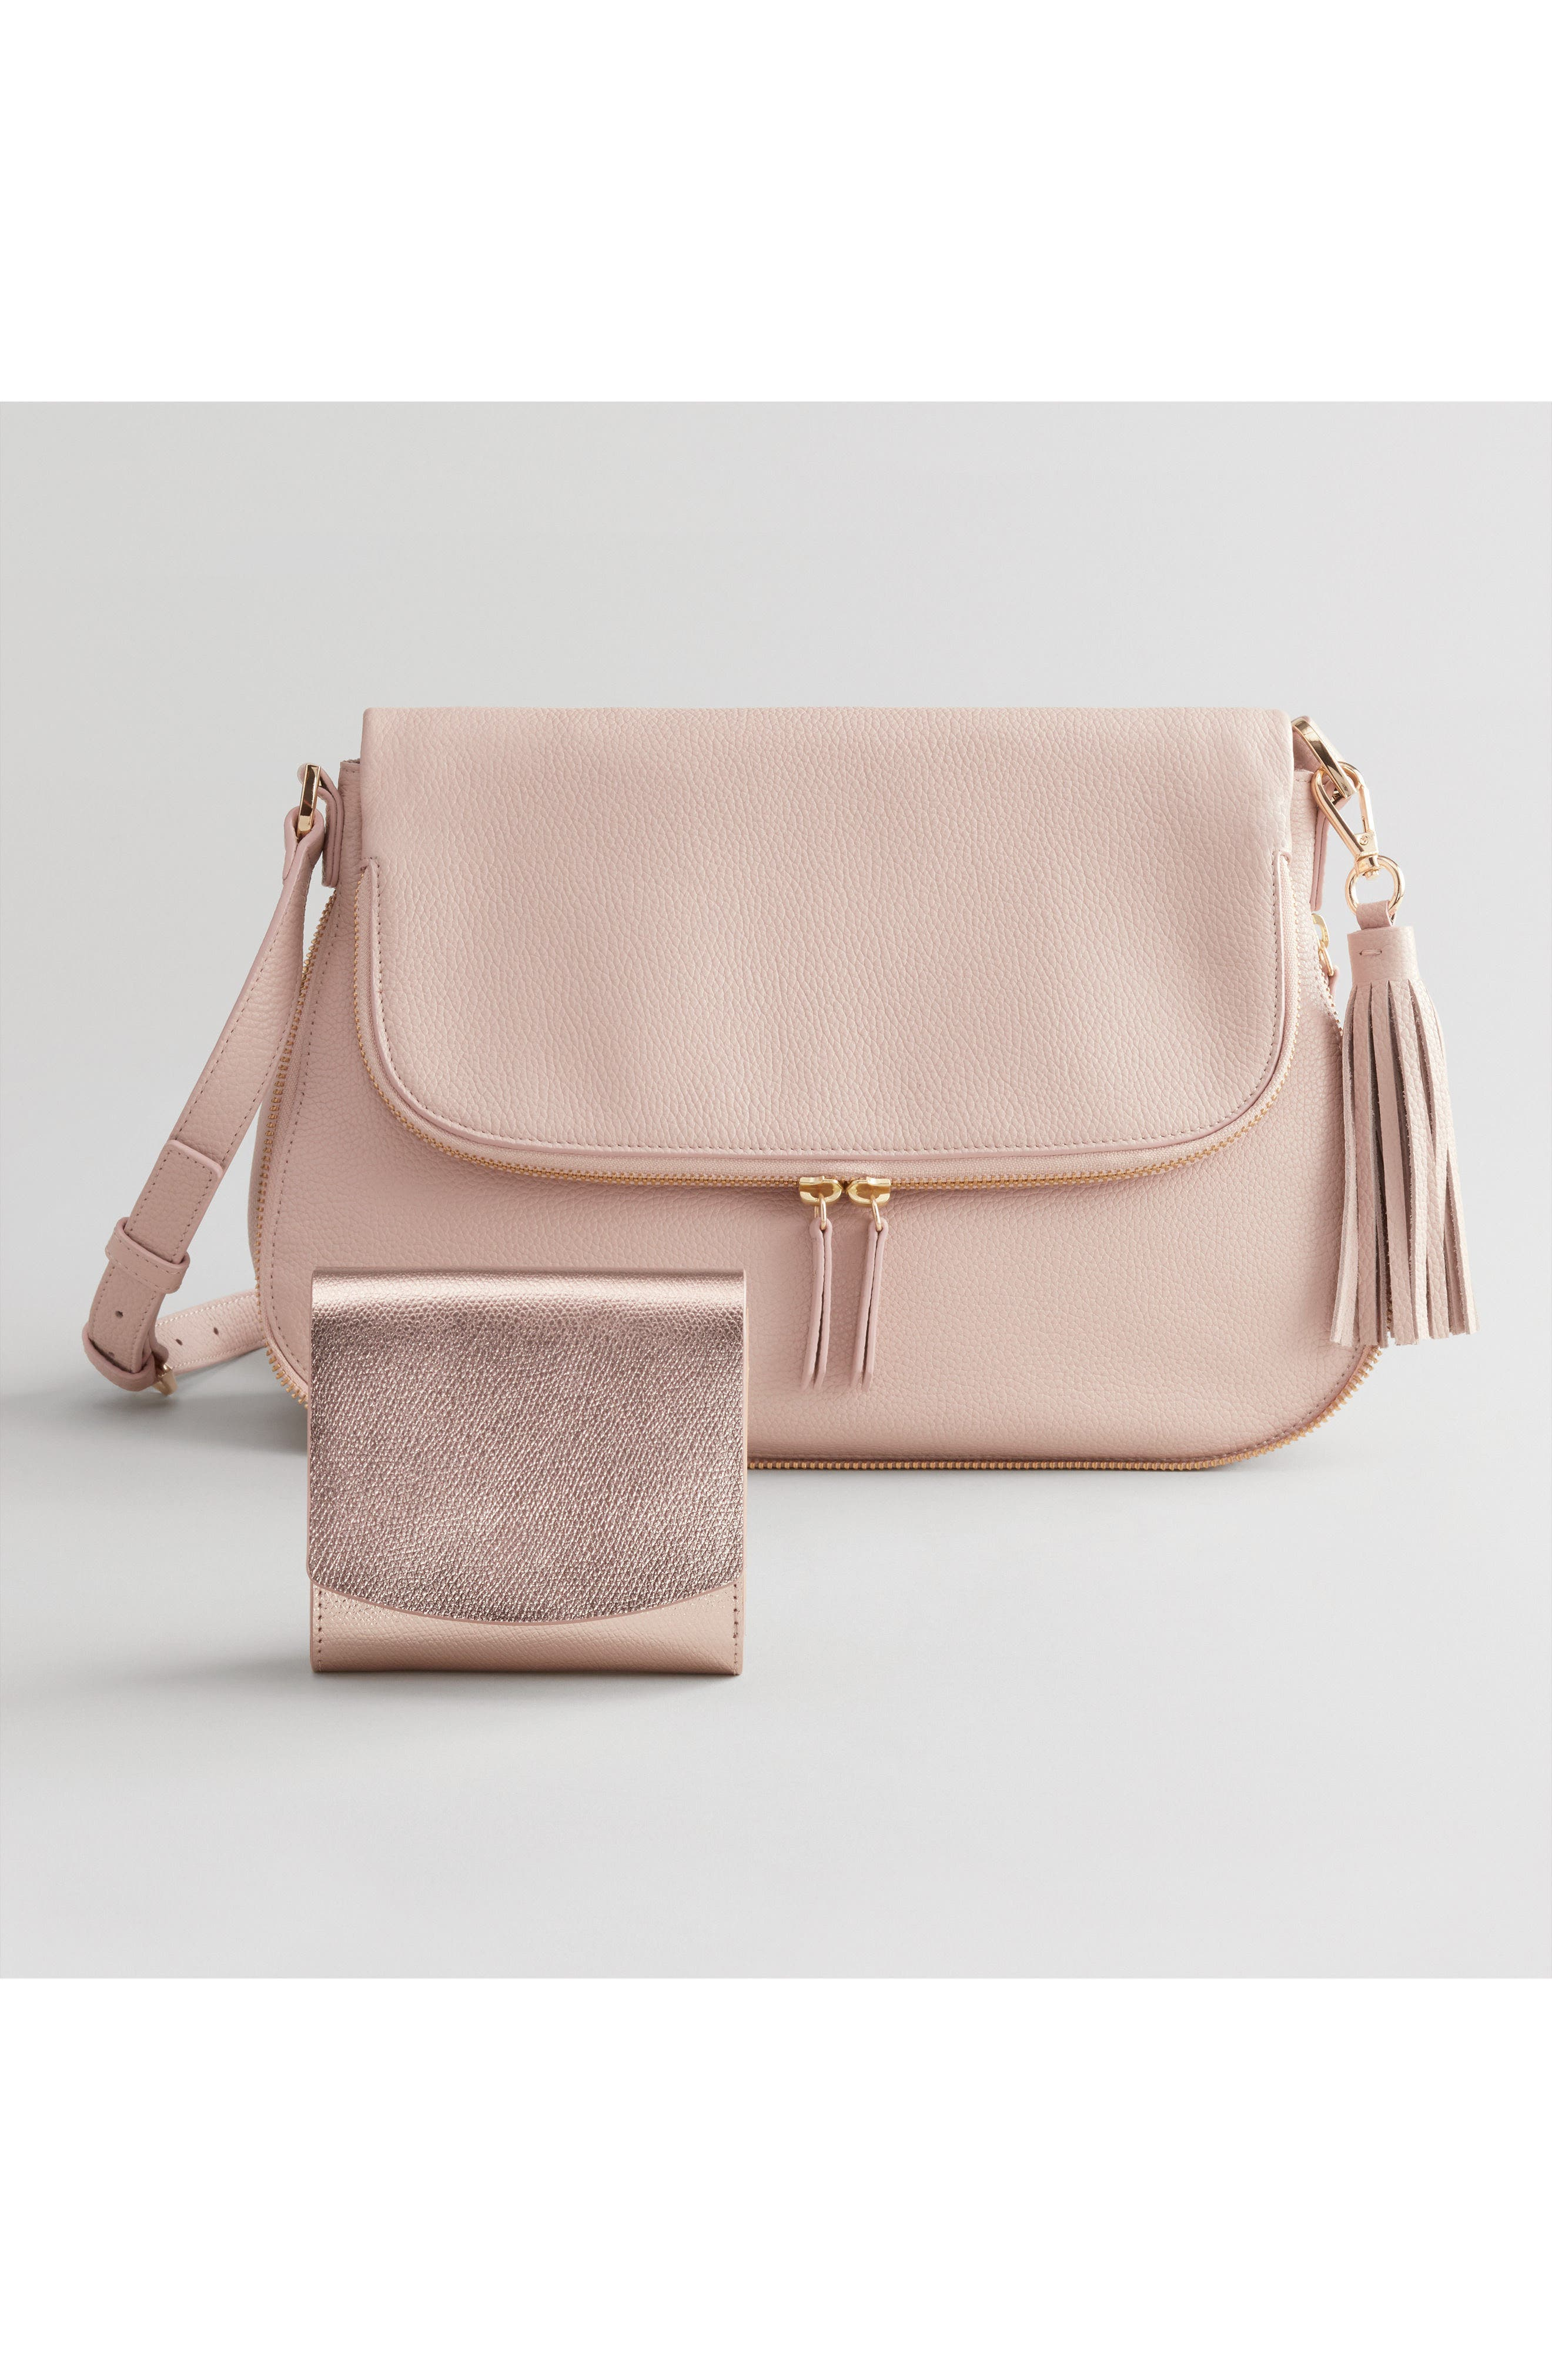 Kara Leather Expandable Crossbody Bag,                             Alternate thumbnail 8, color,                             PINK ROSECLOUD